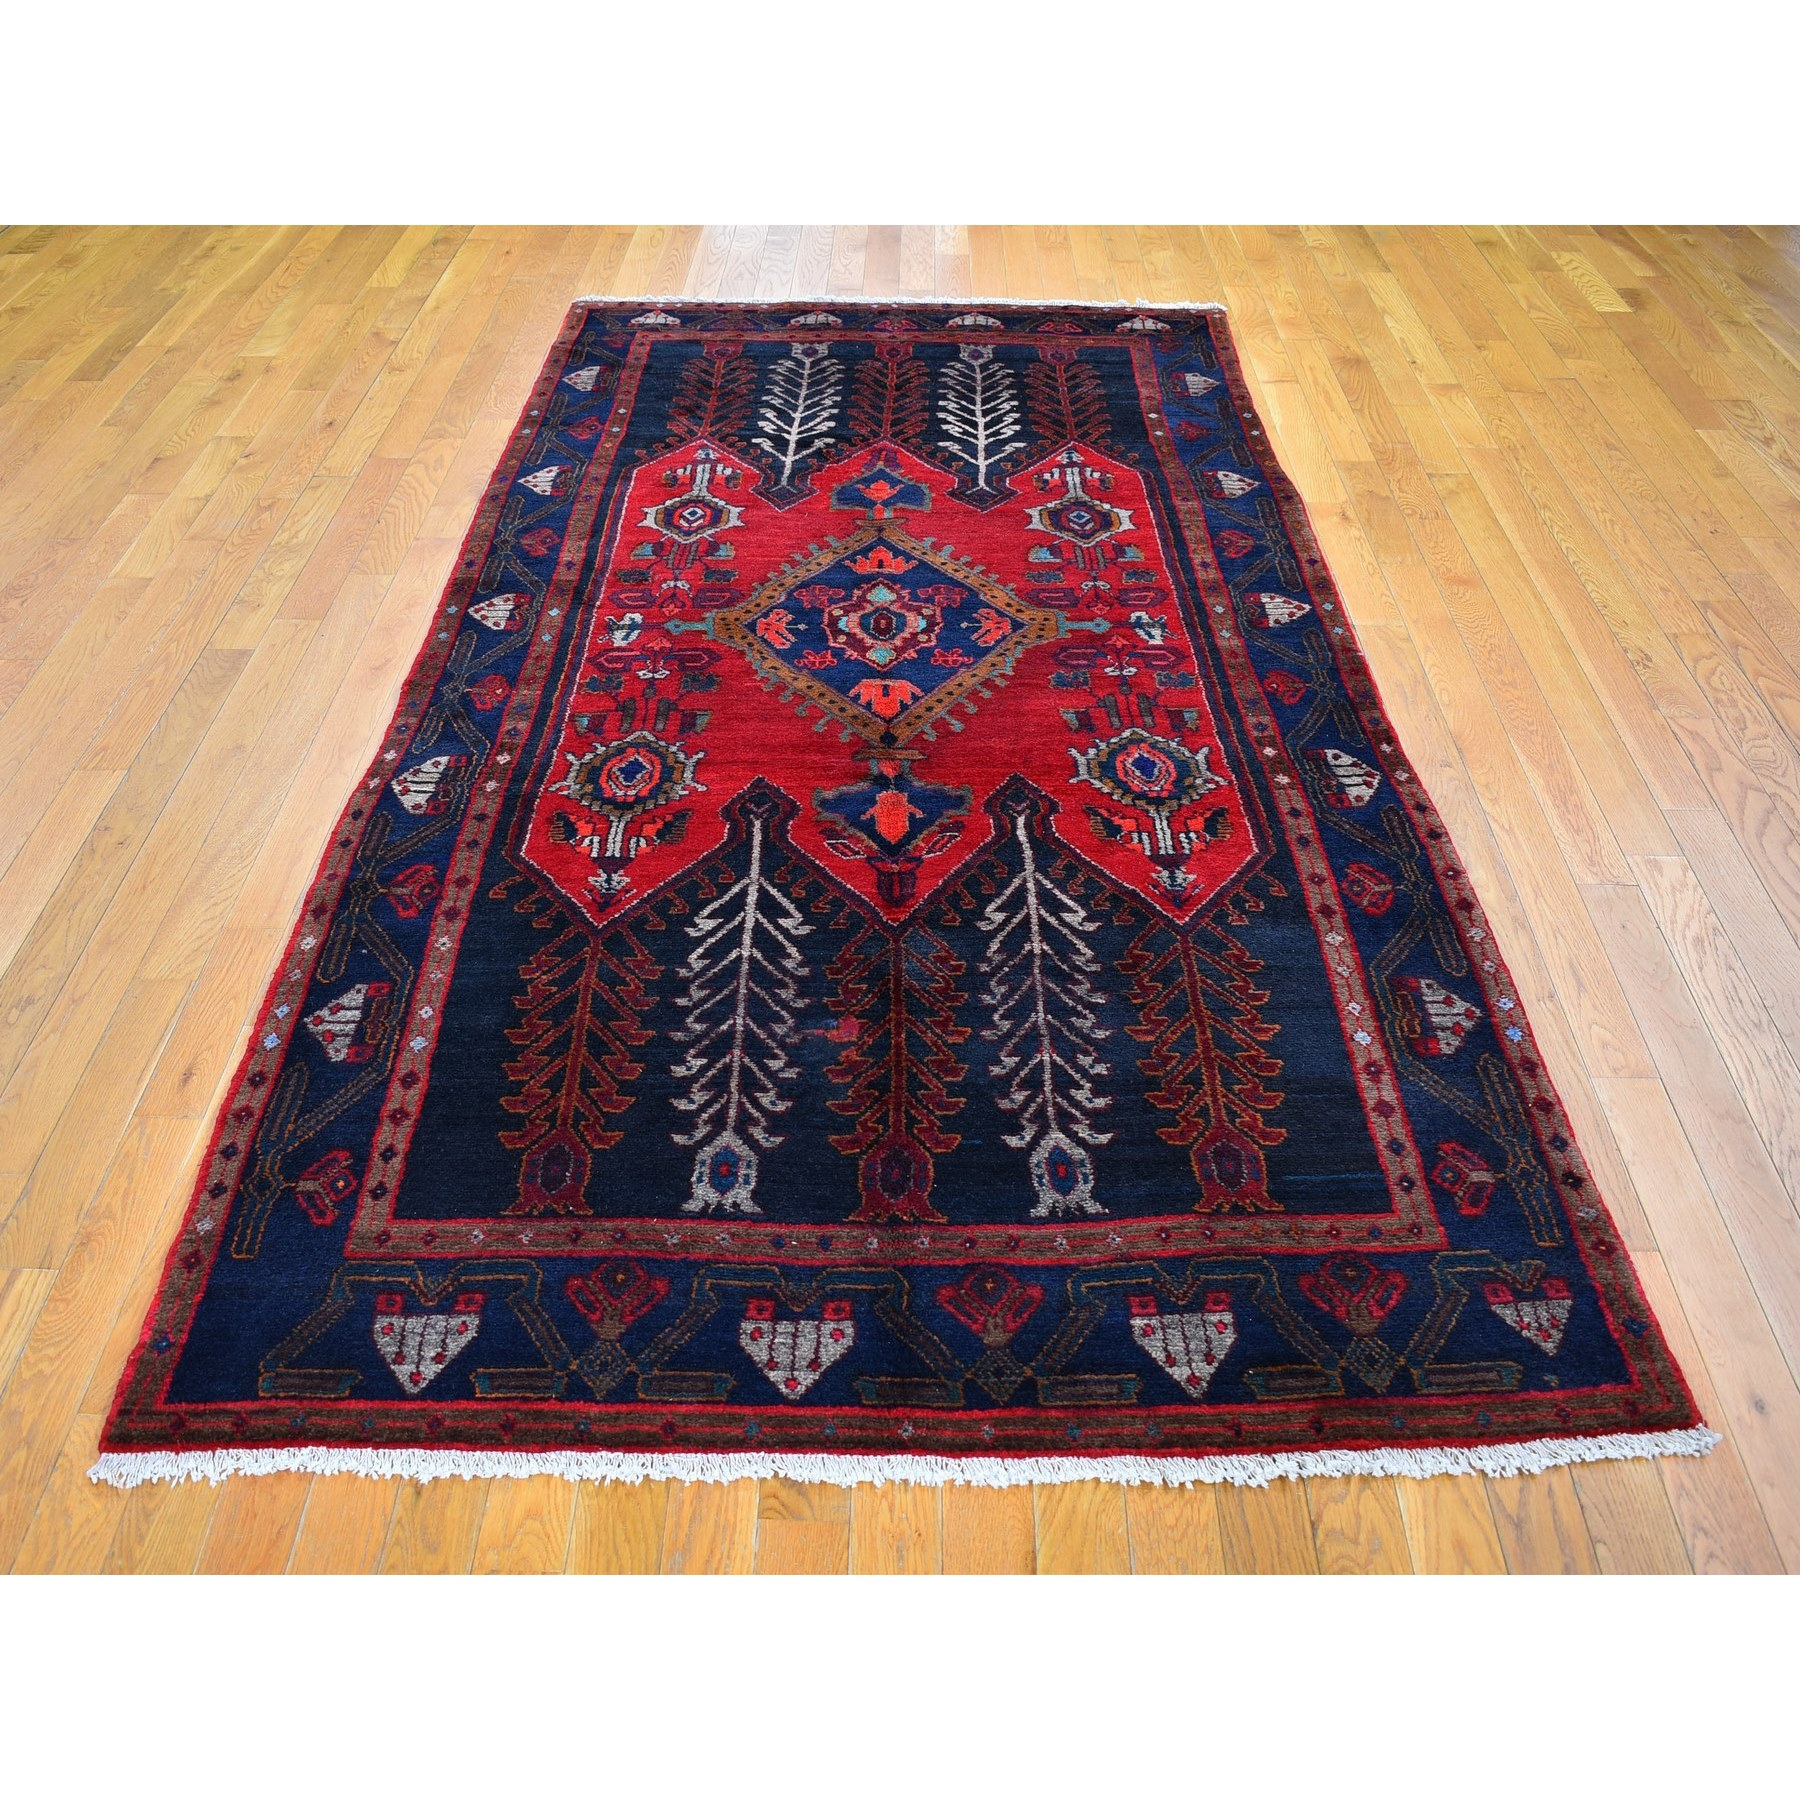 """5'x9'10"""" Charcoal Black Vintage Persian Hamadan with a Very Unique Tree Design Natural Wool Hand Knotted Oriental Rug"""